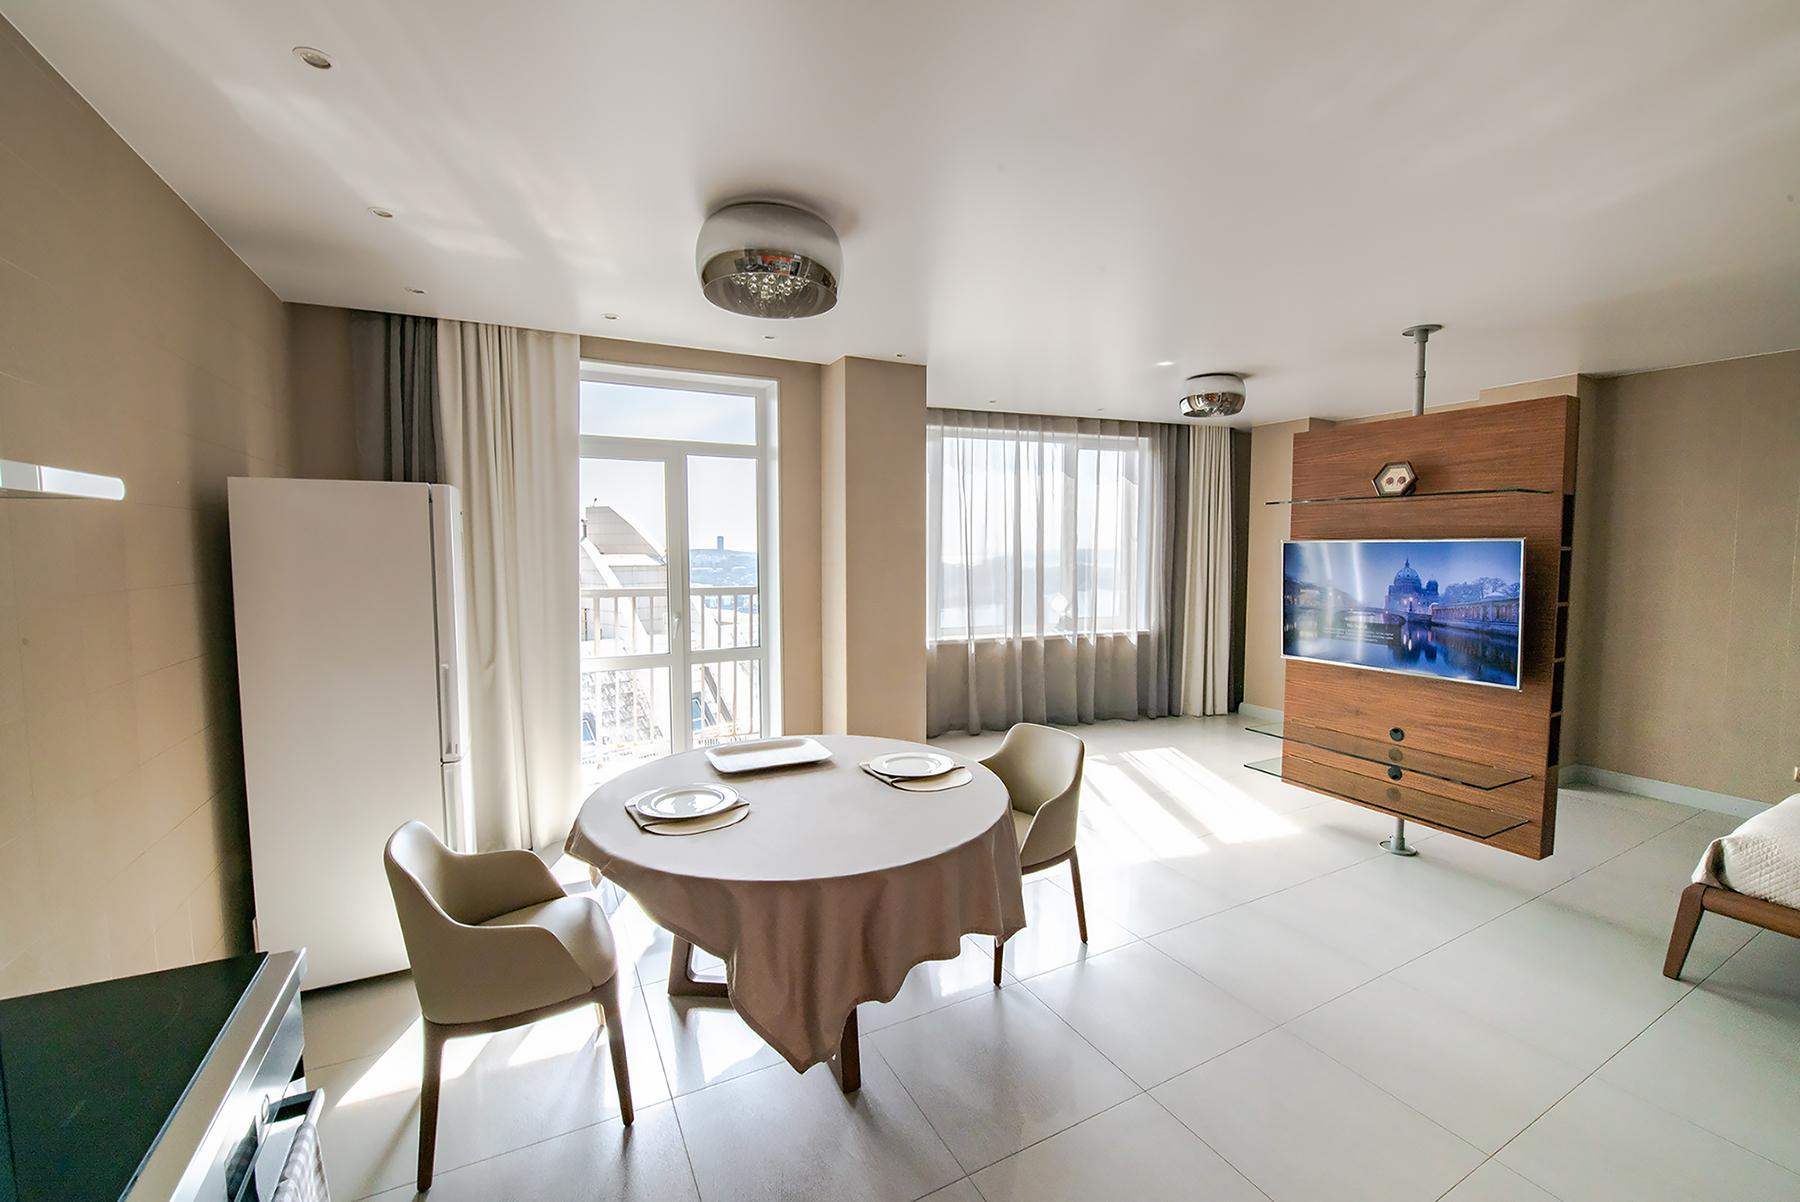 De Luxe Apt With Panoramic City View In Downtown